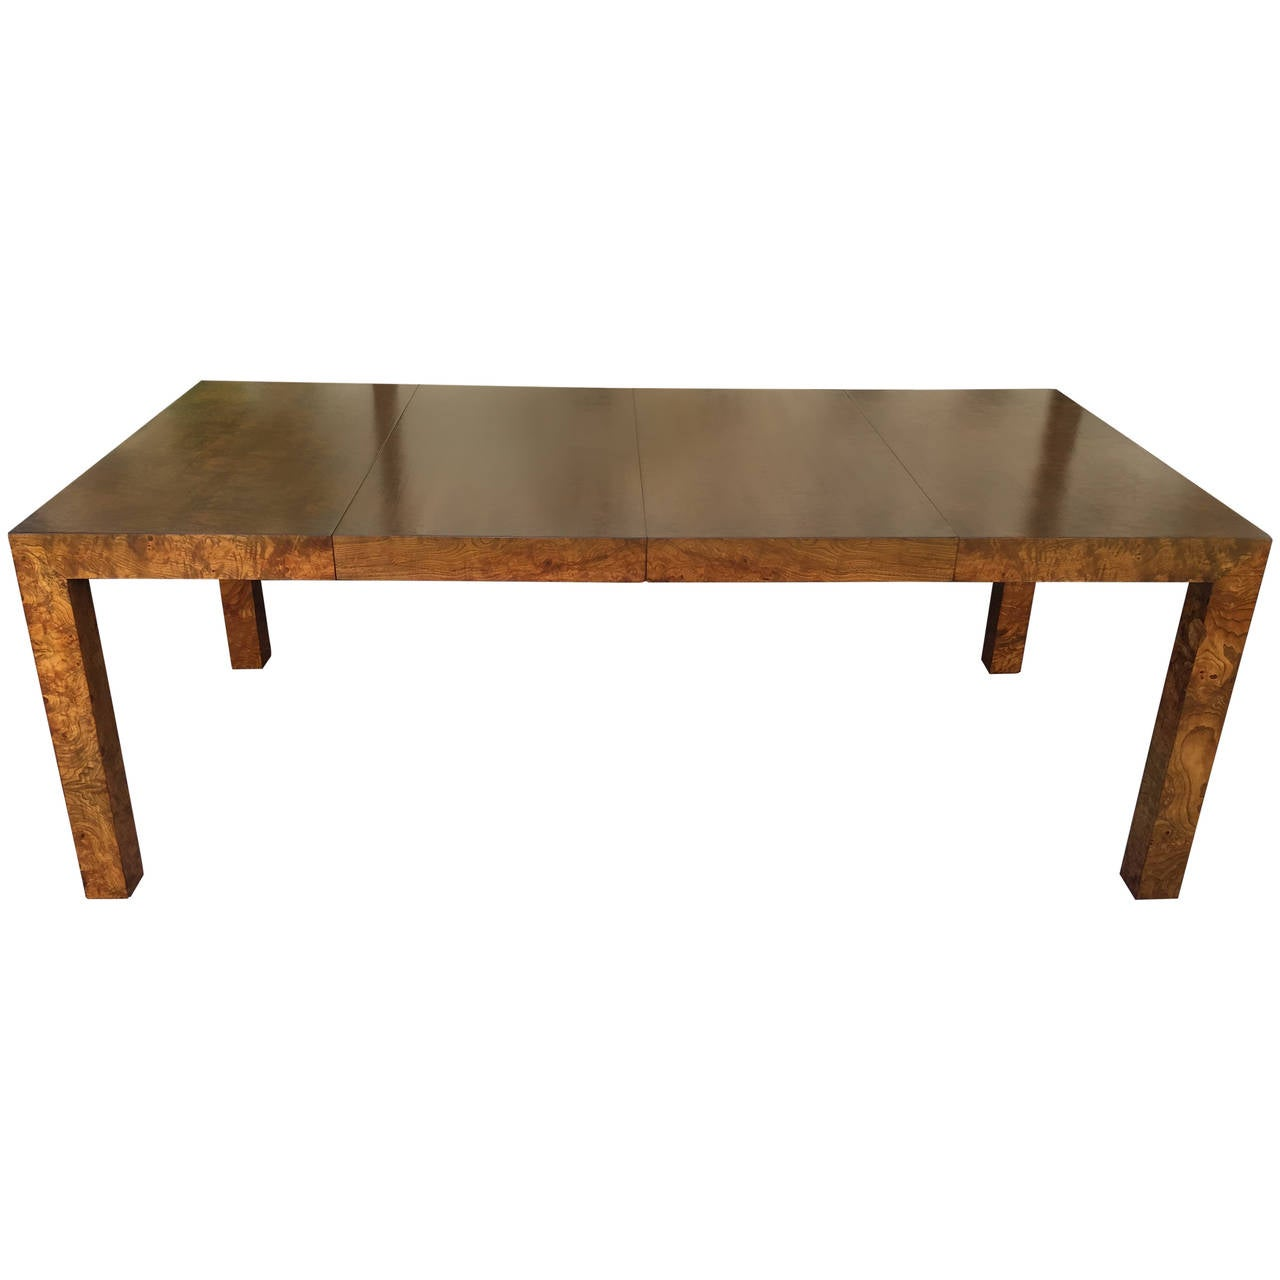 Gorgeous Burl Wood Dining Table By Milo Baughman For Thayer Coggin At